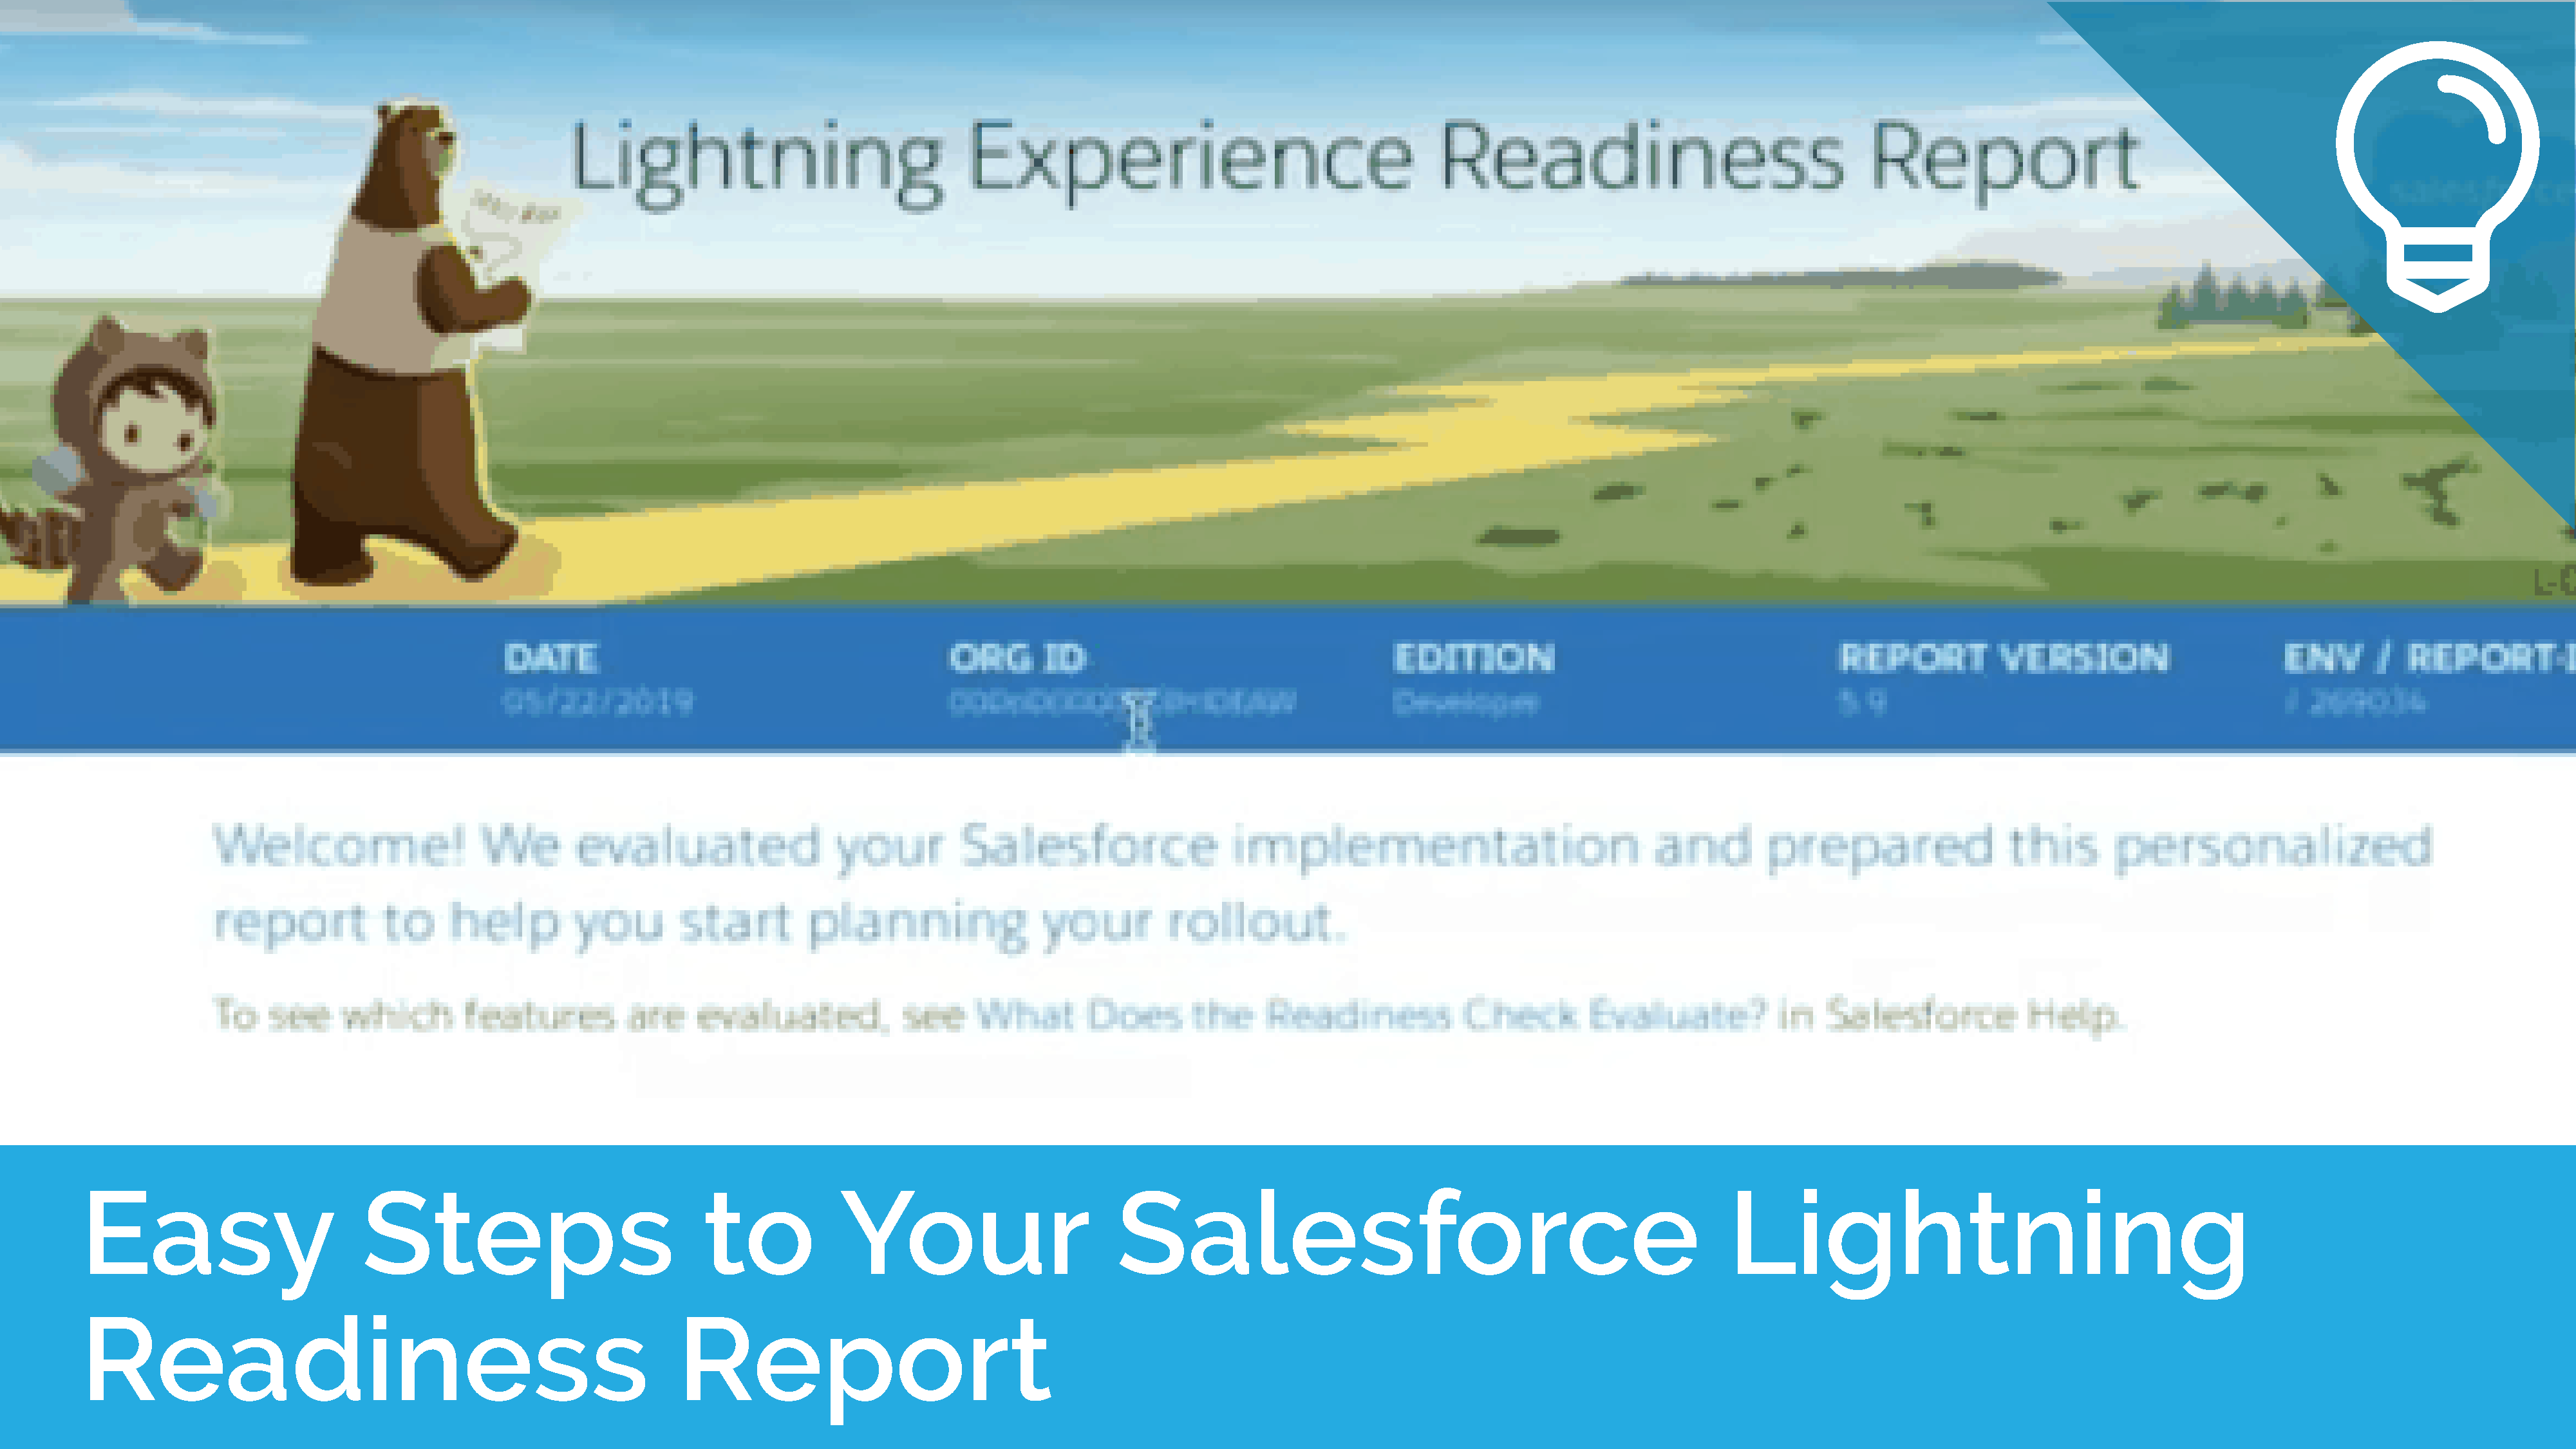 Easy Steps to Your Salesforce Lightning Readiness Report